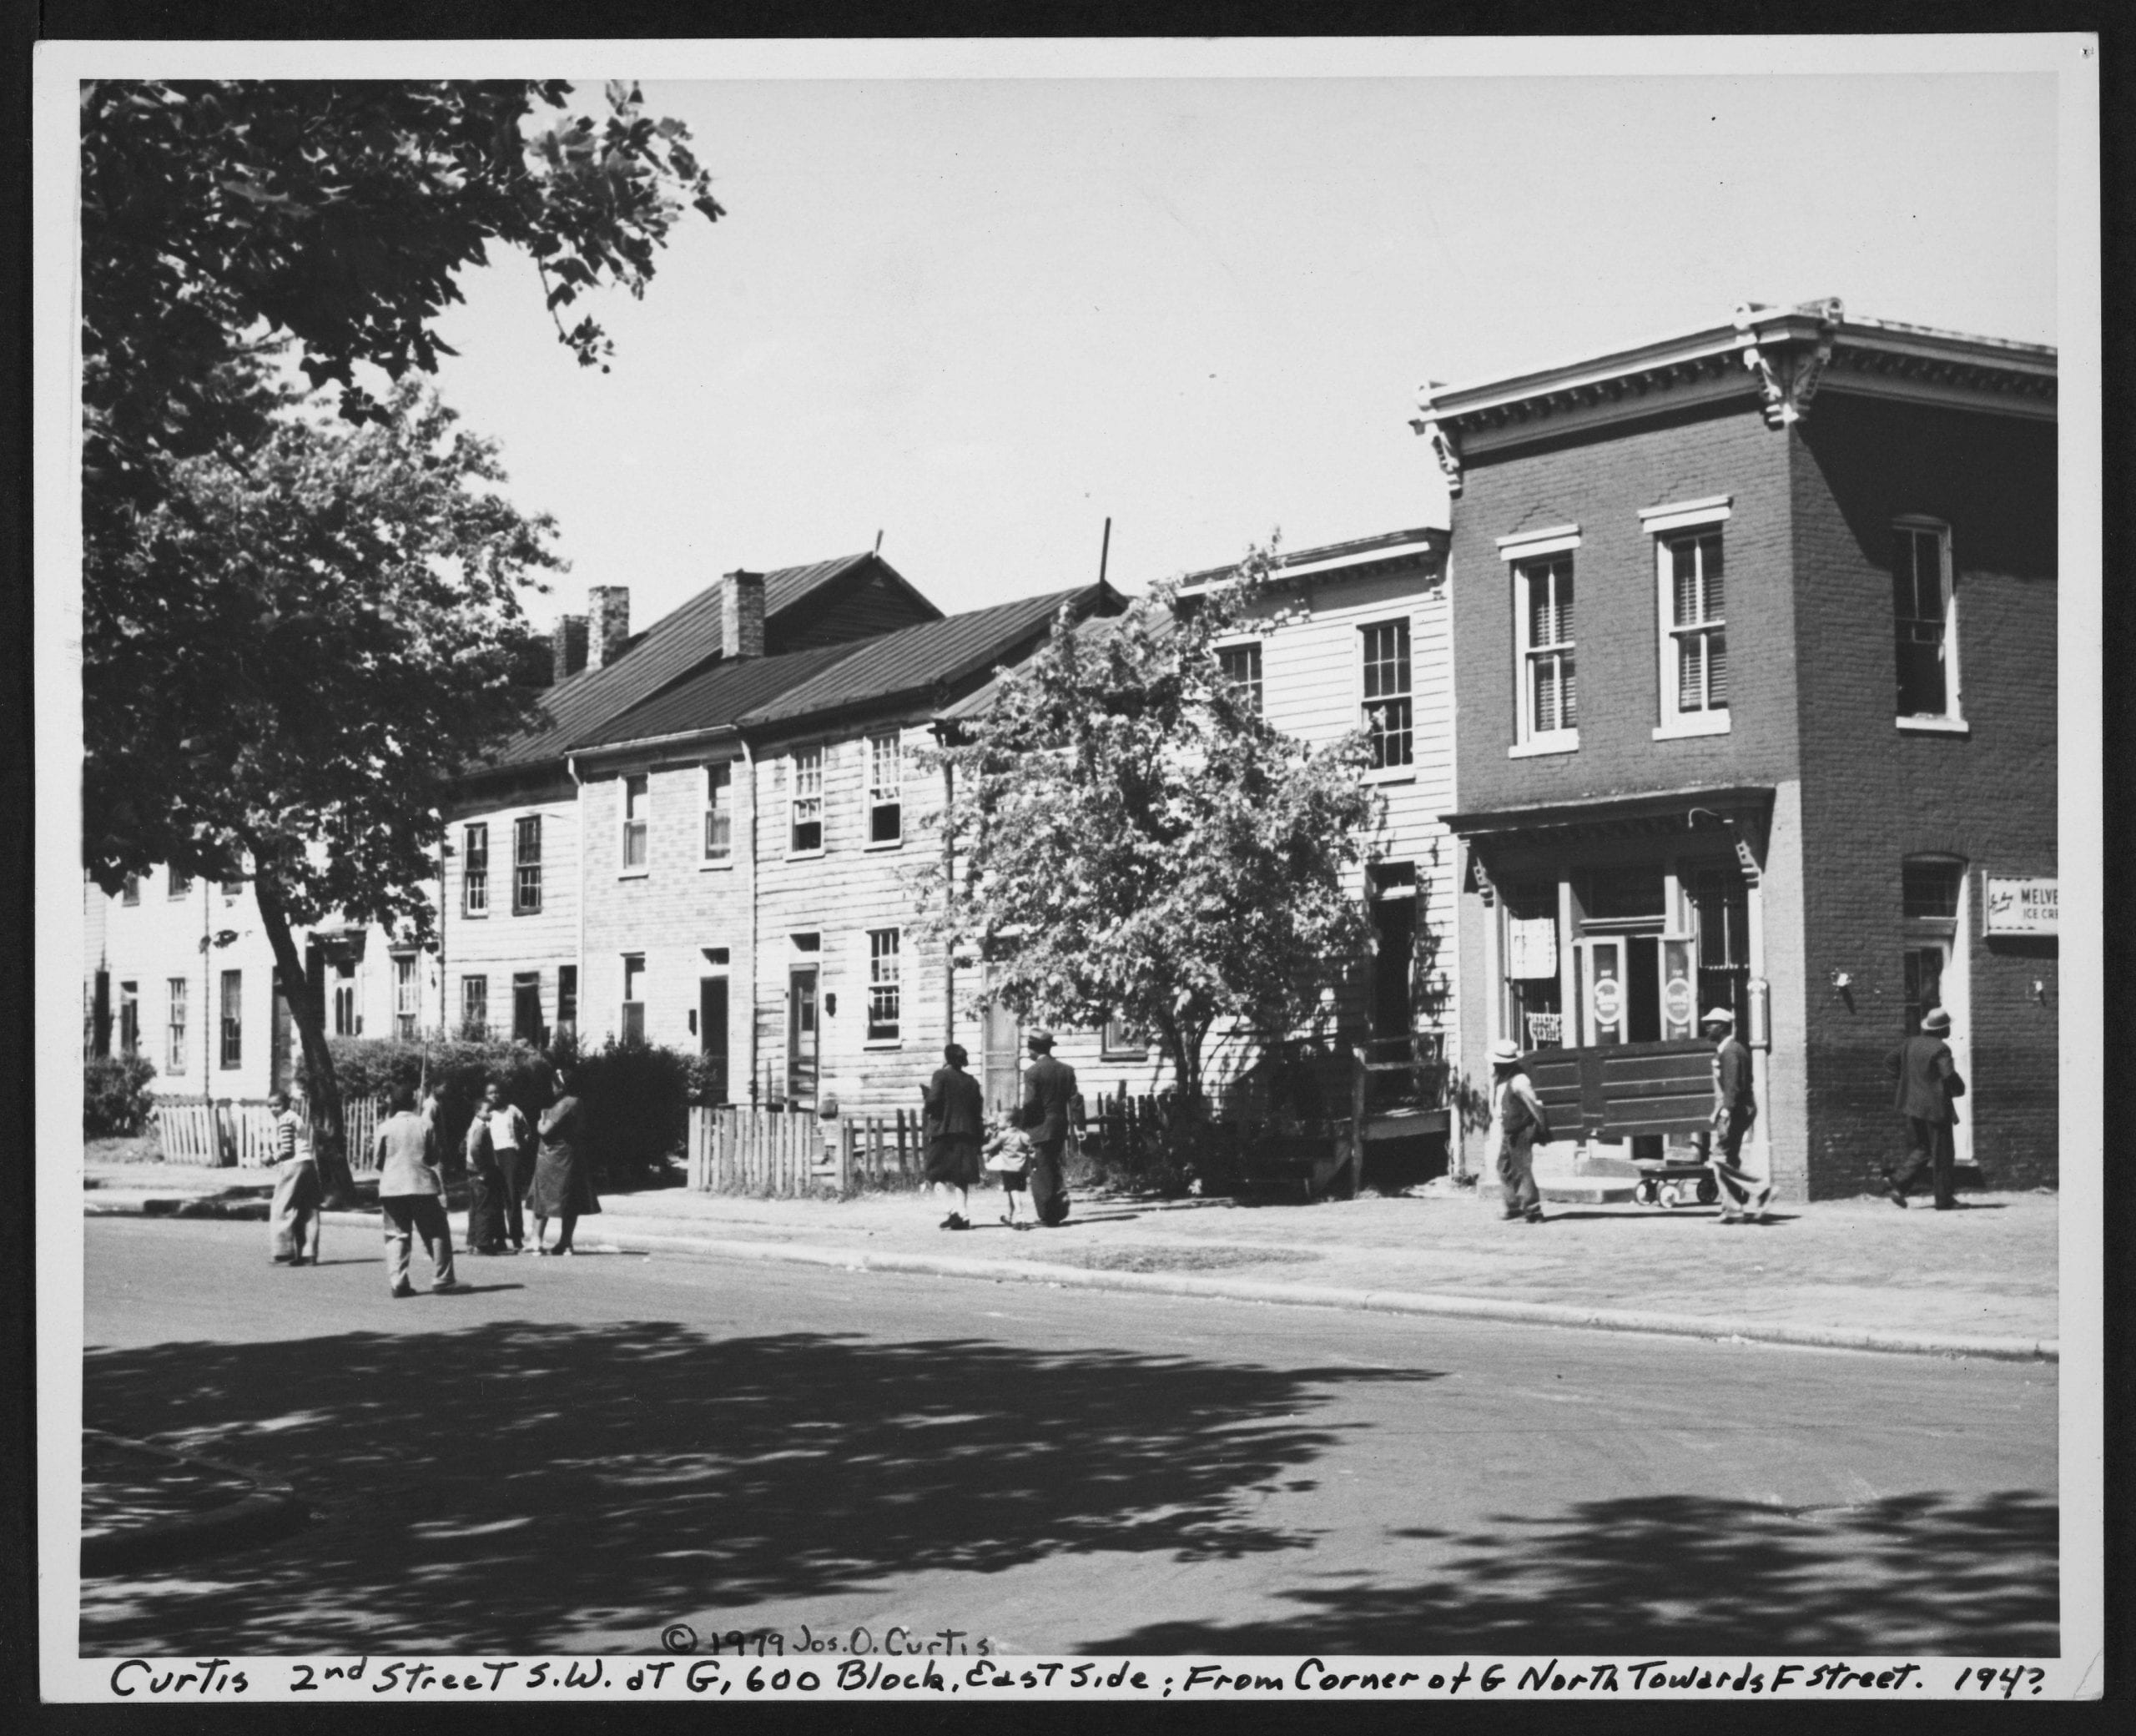 Street, row houses and corner store on the east side of the 600 block of G Street, looking north toward F Street. People walk and socialize on the sidewalk. Men carry a door.